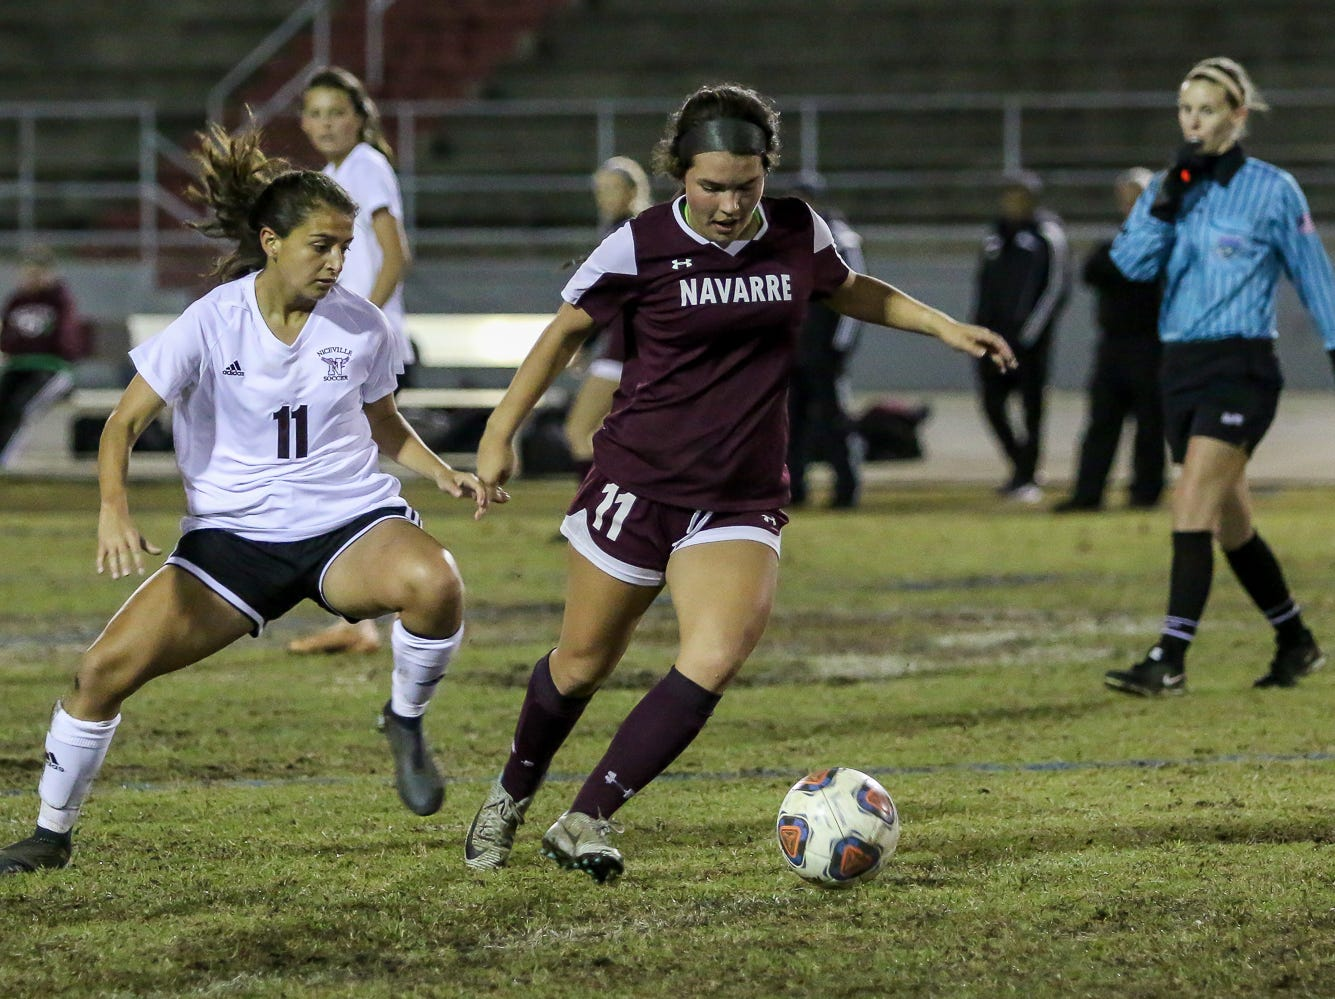 Niceville's Kayla Fernandez chases after Navarre's Anakah Madril in a District 1-4A showdown of unbeaten teams at Navarre High School on Tuesday, December 4, 2018. The game ended in a 1-1 tie.